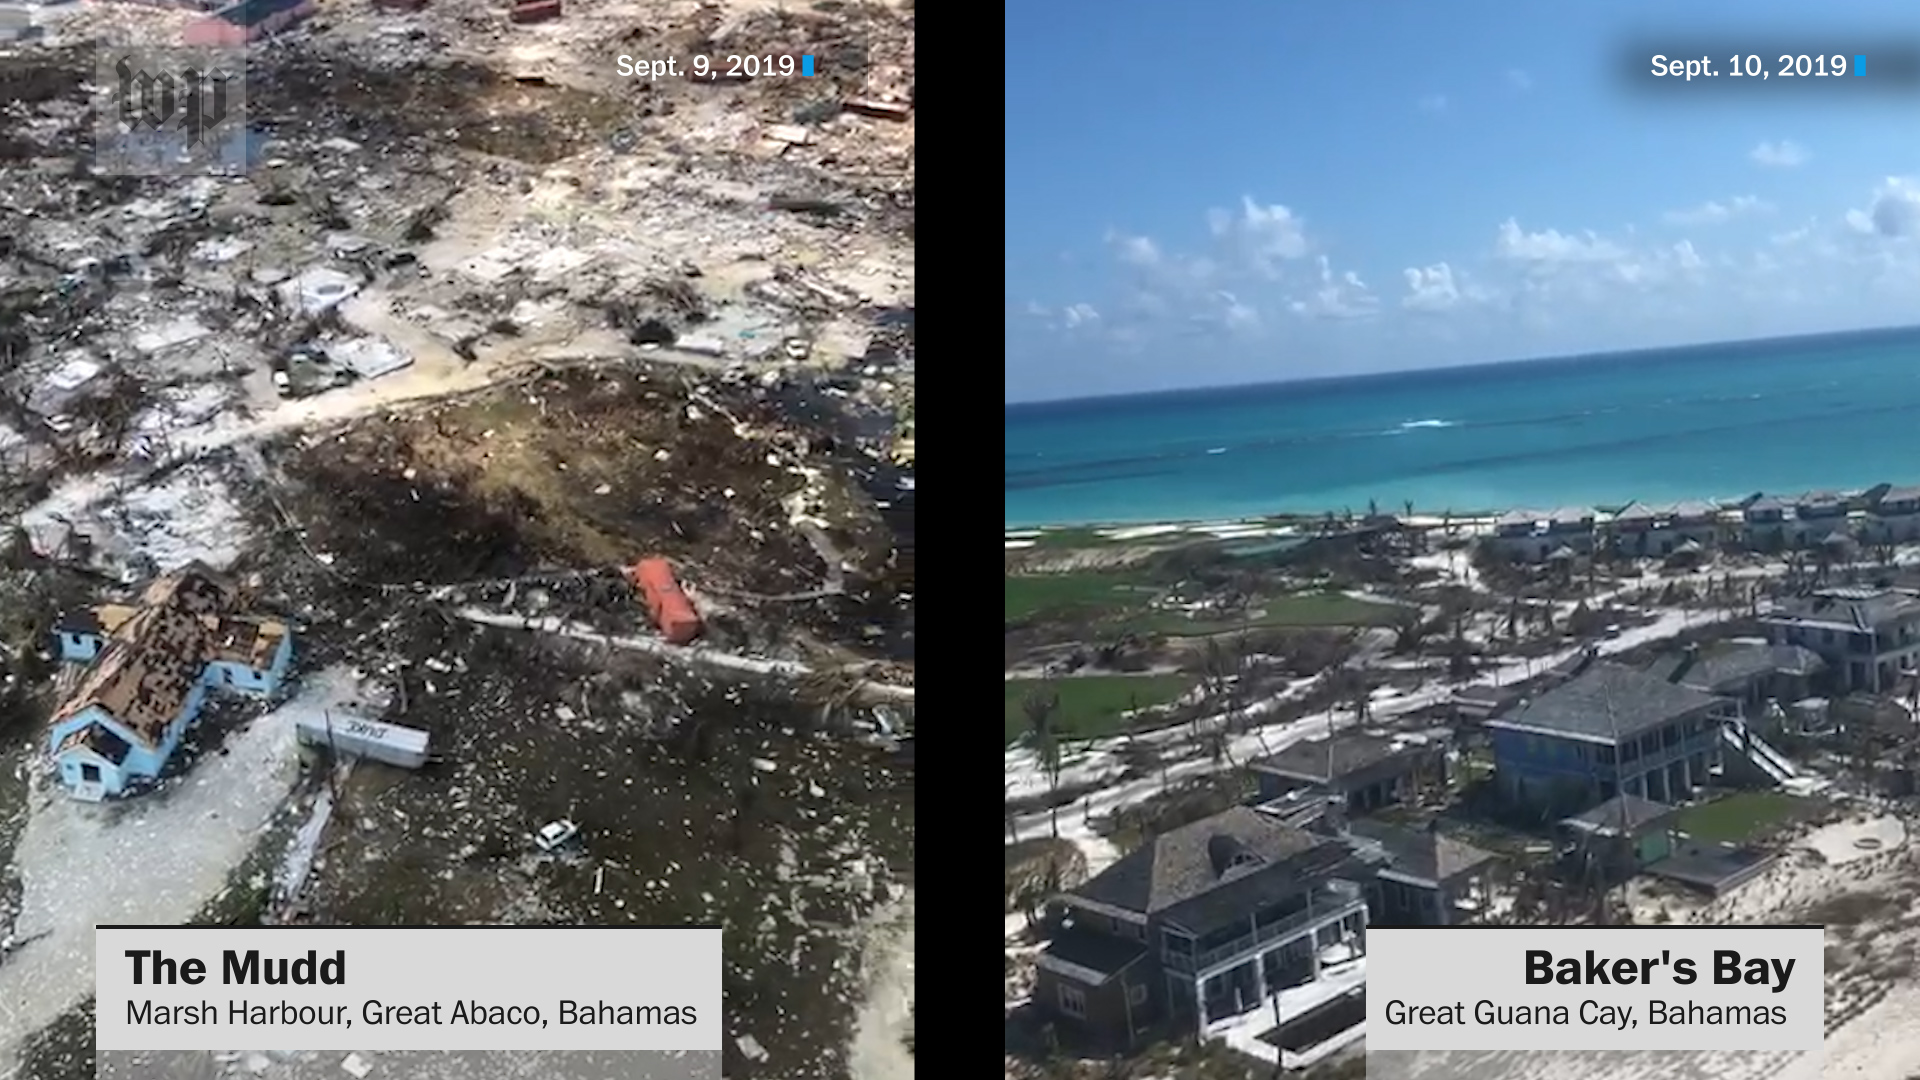 When Hurricane Dorian blew through the Bahamas, it exposed one of the world's great faultlines of inequality